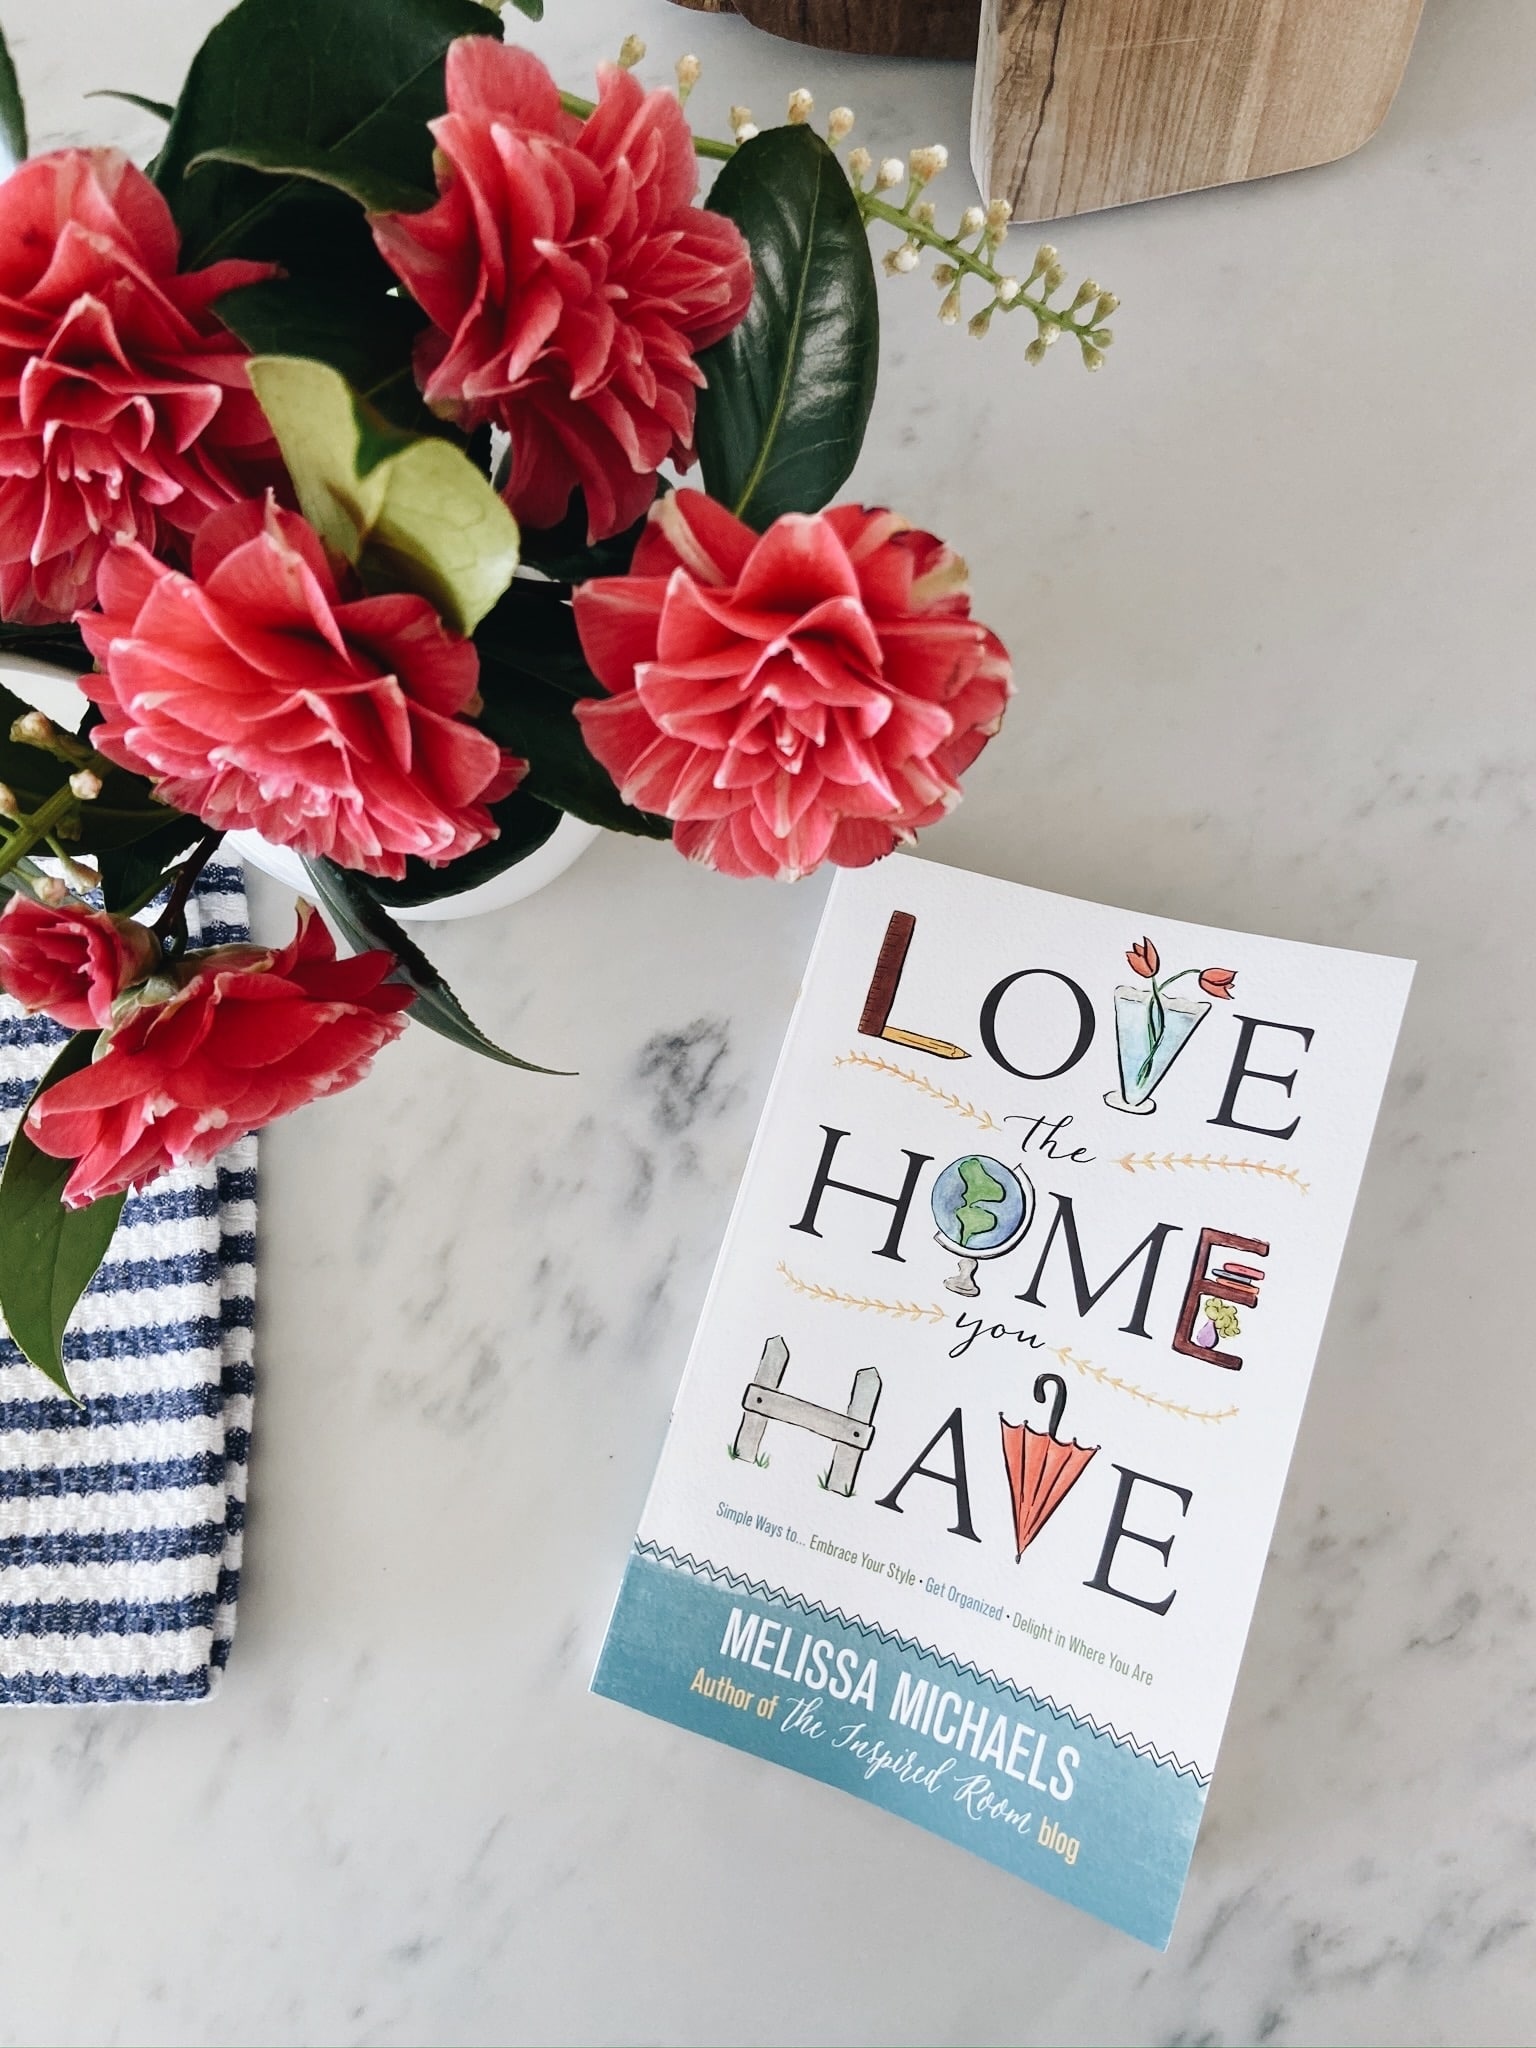 How to Fall in Love with Your Home